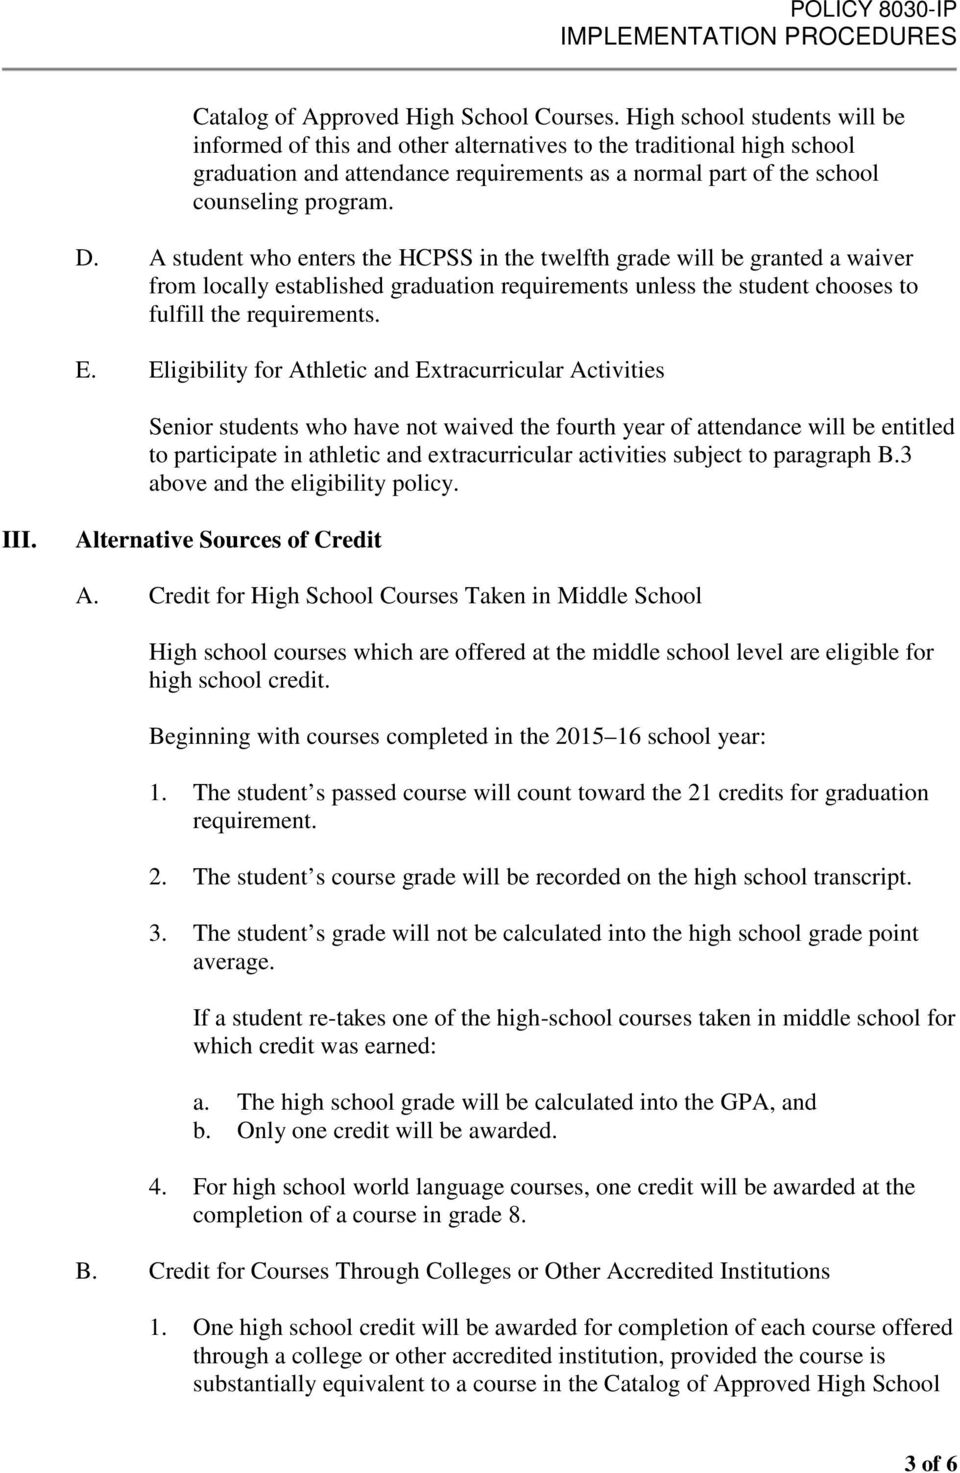 A student who enters the HCPSS in the twelfth grade will be granted a waiver from locally established graduation requirements unless the student chooses to fulfill the requirements. E.